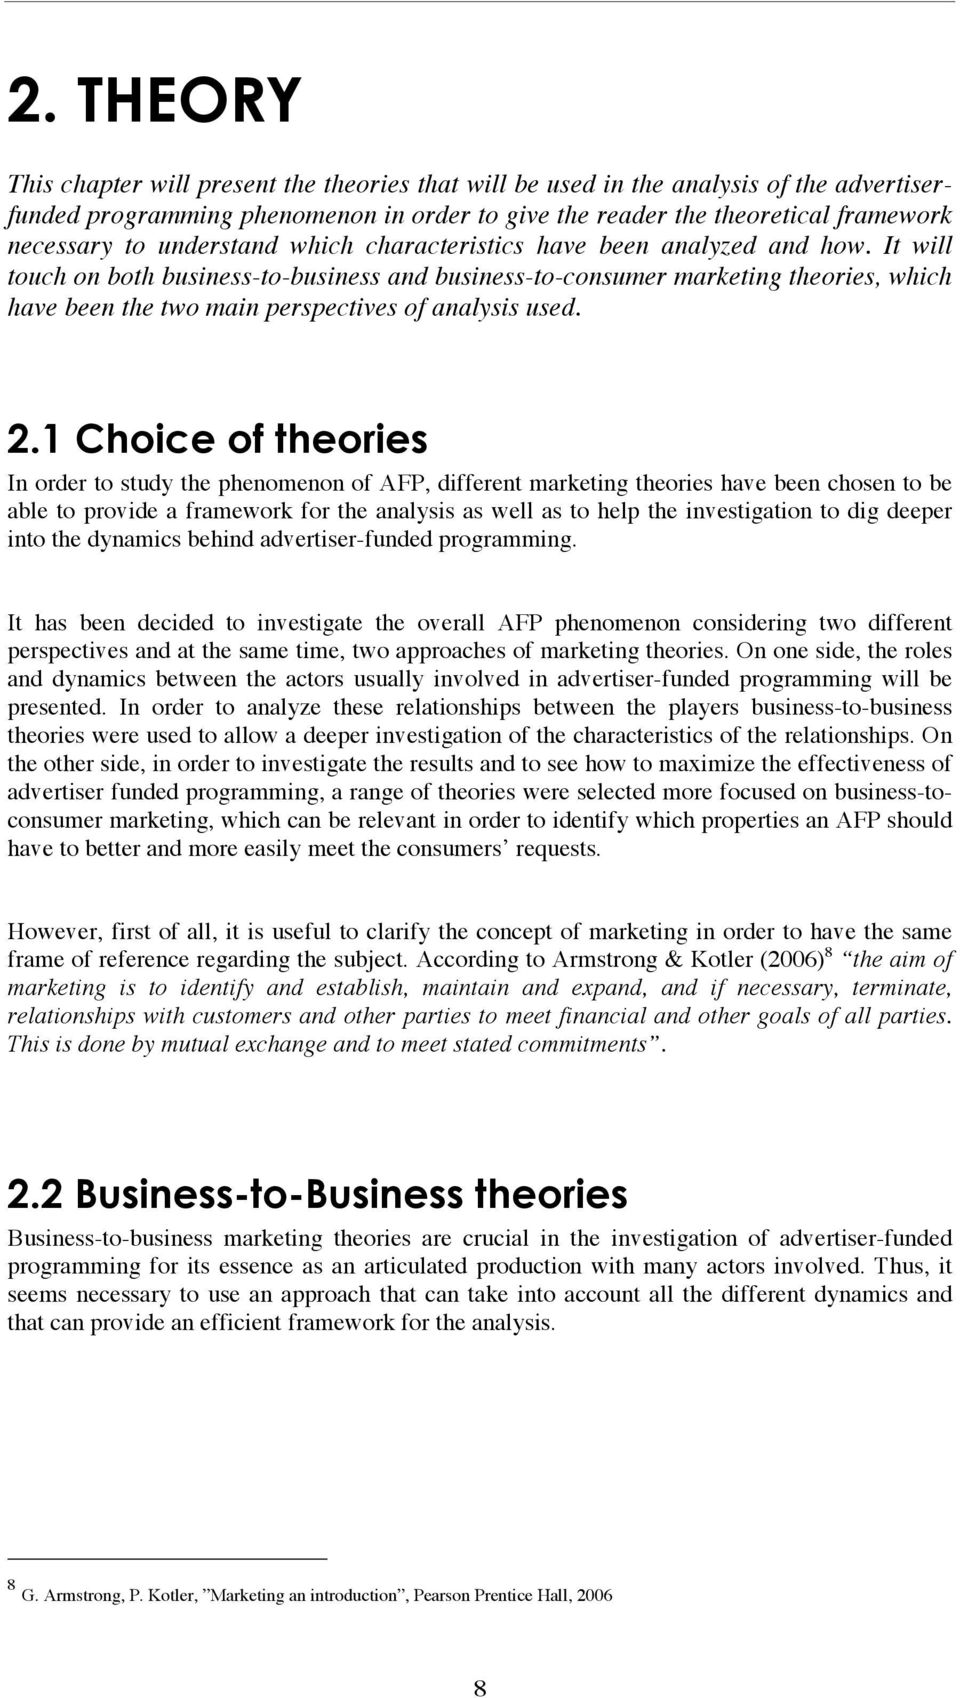 It will touch on both business-to-business and business-to-consumer marketing theories, which have been the two main perspectives of analysis used. 2.